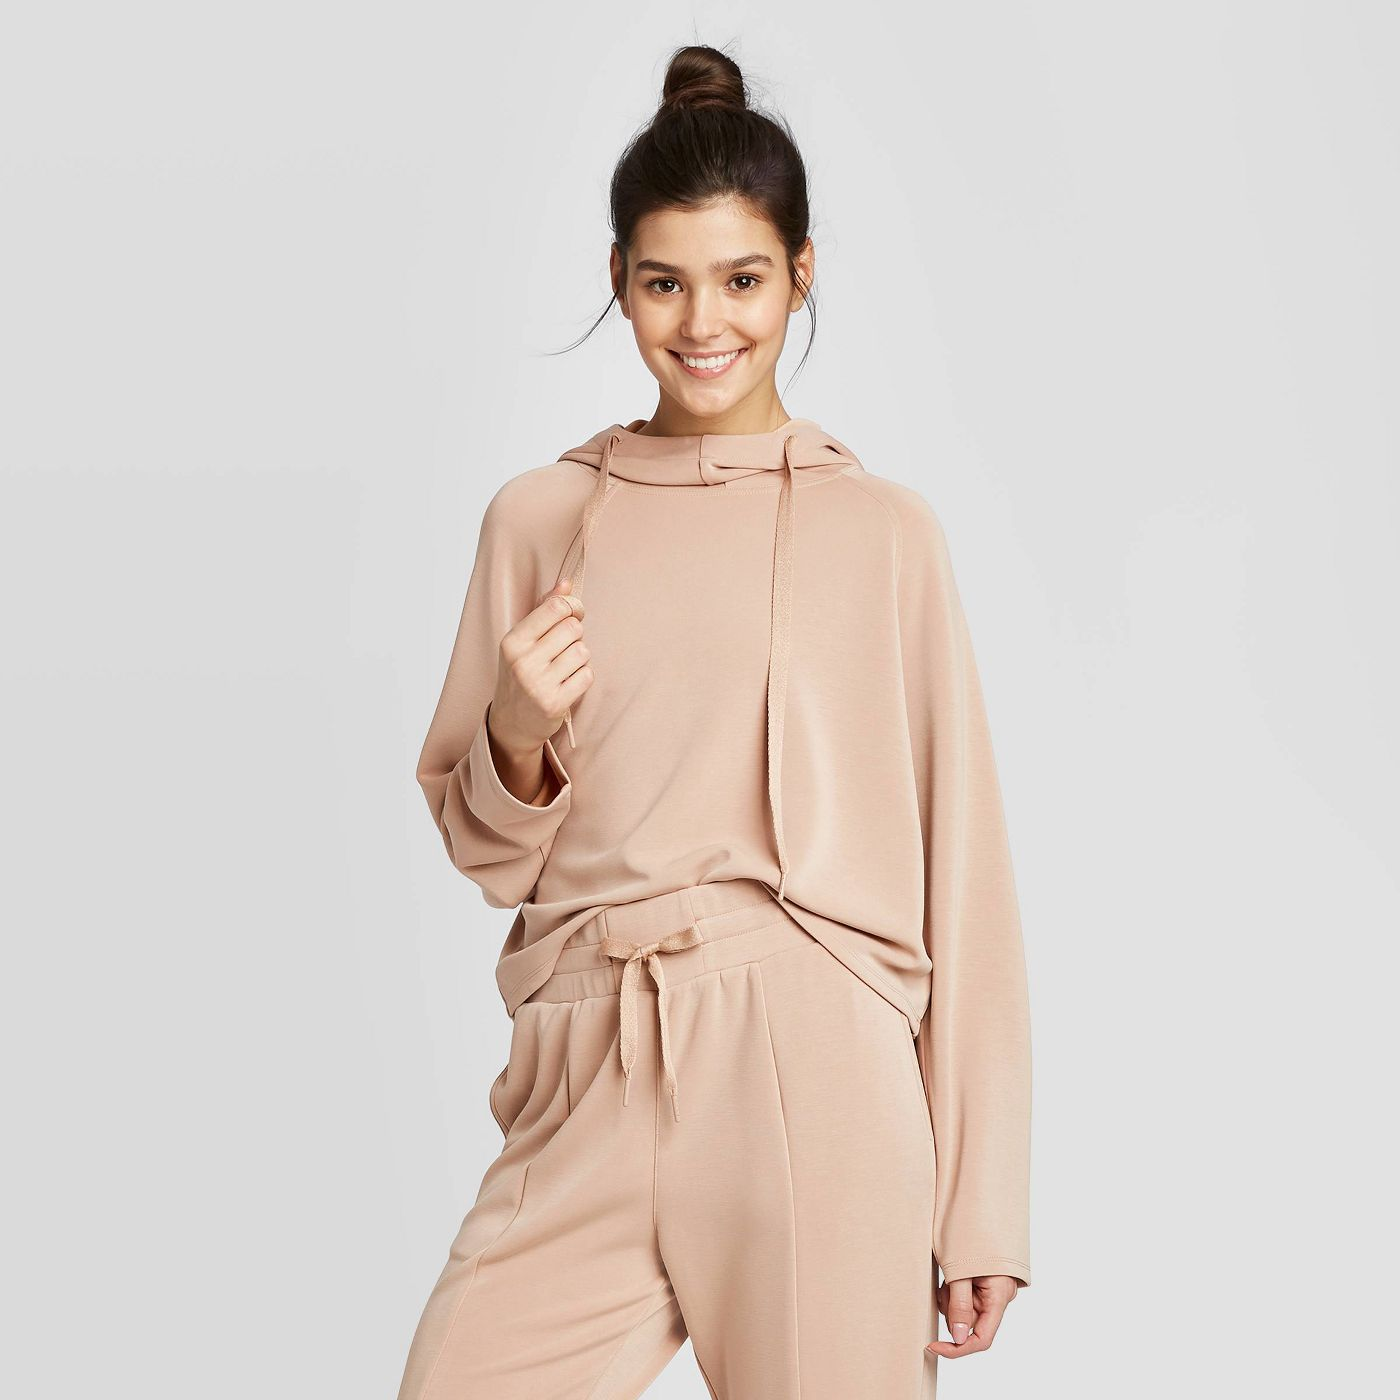 Slip into one of these adorably chic and on trend Loungewear Sets and Matching Sweatsuits, look cute as could be from the comfort of your sofa, and and stay on budget. These adorable and under $50 cozy and chic sets will get you through the season in total comfort! | glitterinc.com | @glitterinc // JoyLab Women's Slounge Sweatshirt + JoyLab Women's Slounge Trousers